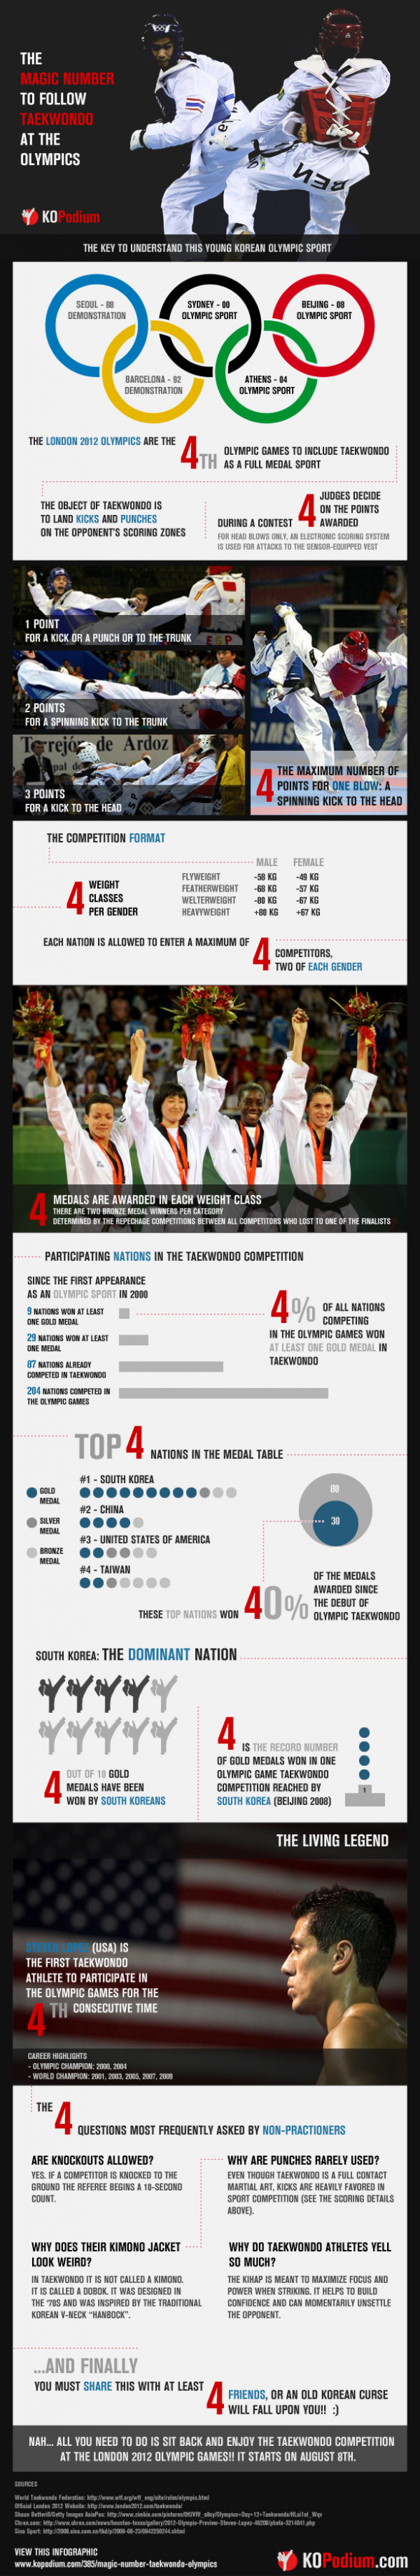 Taekwondo At The Olympics Magic Number